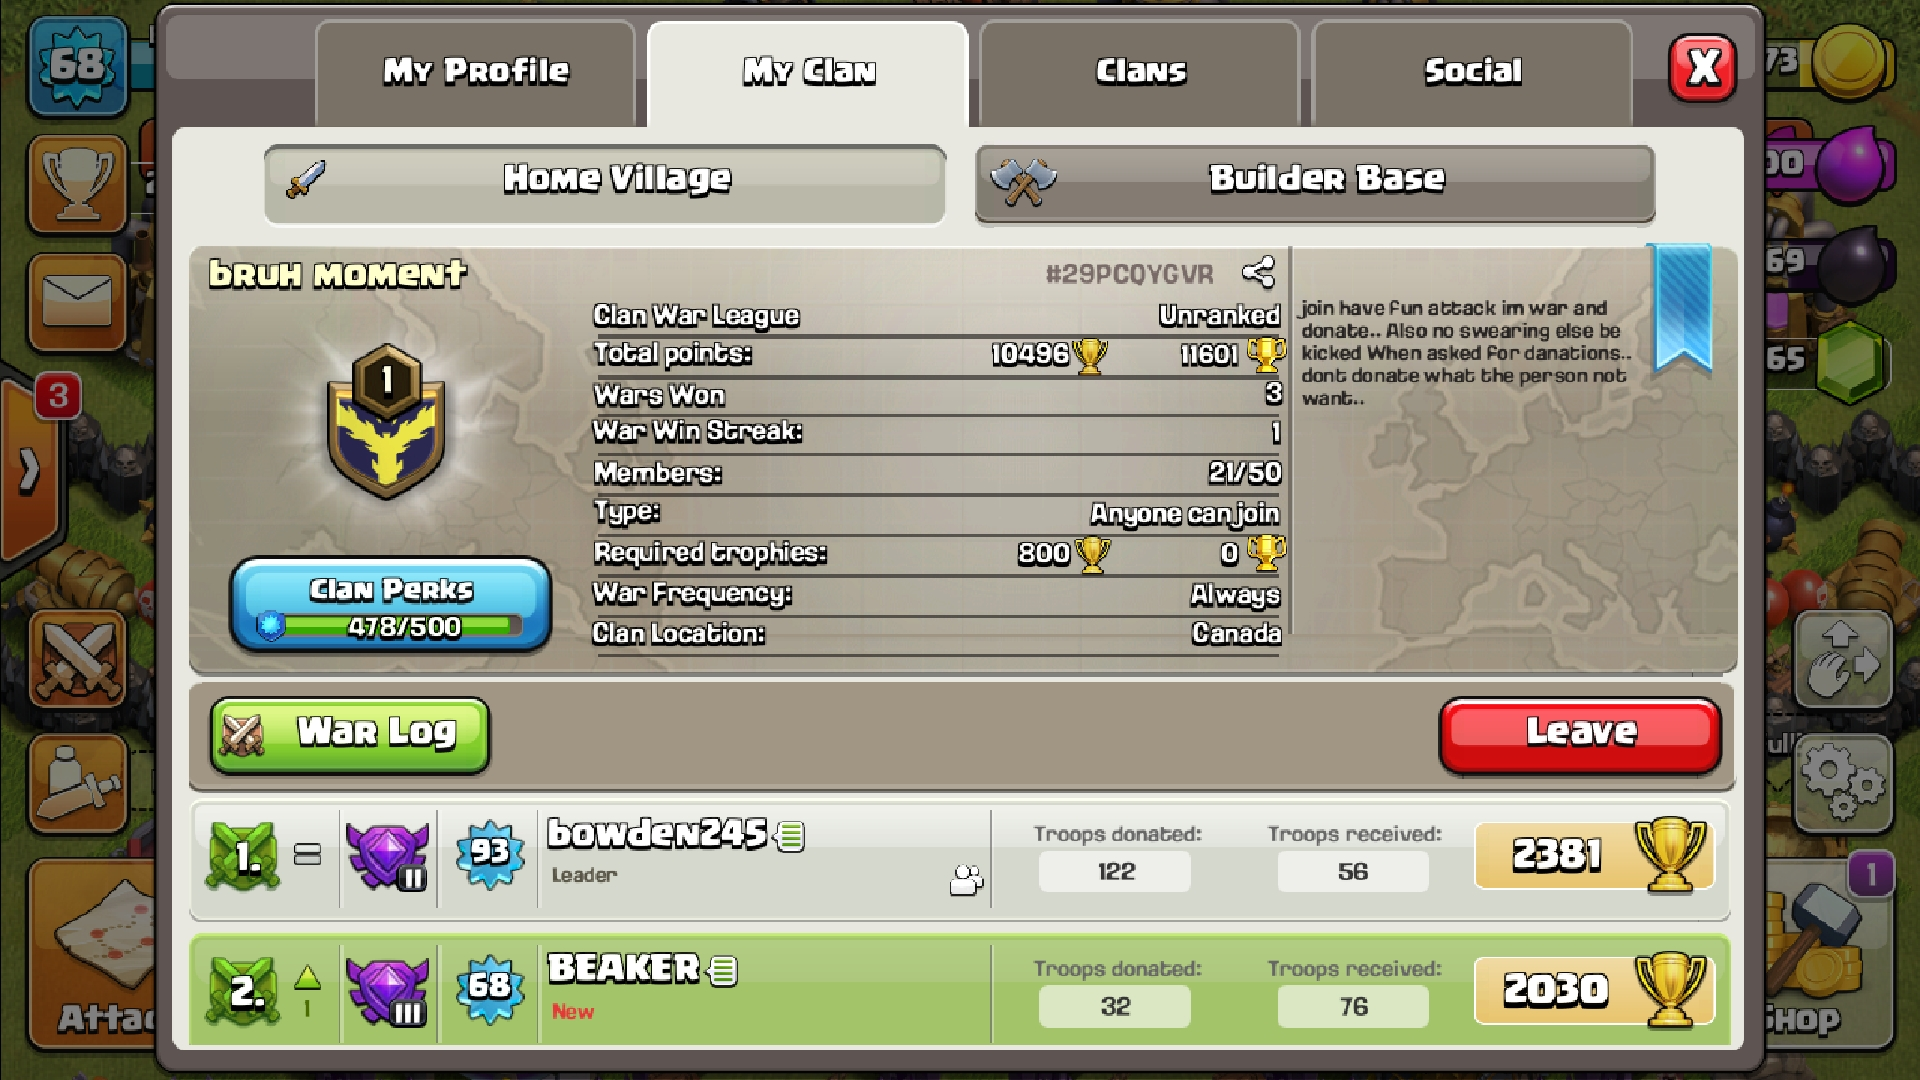 Join my clan bruh moment and help us become grate